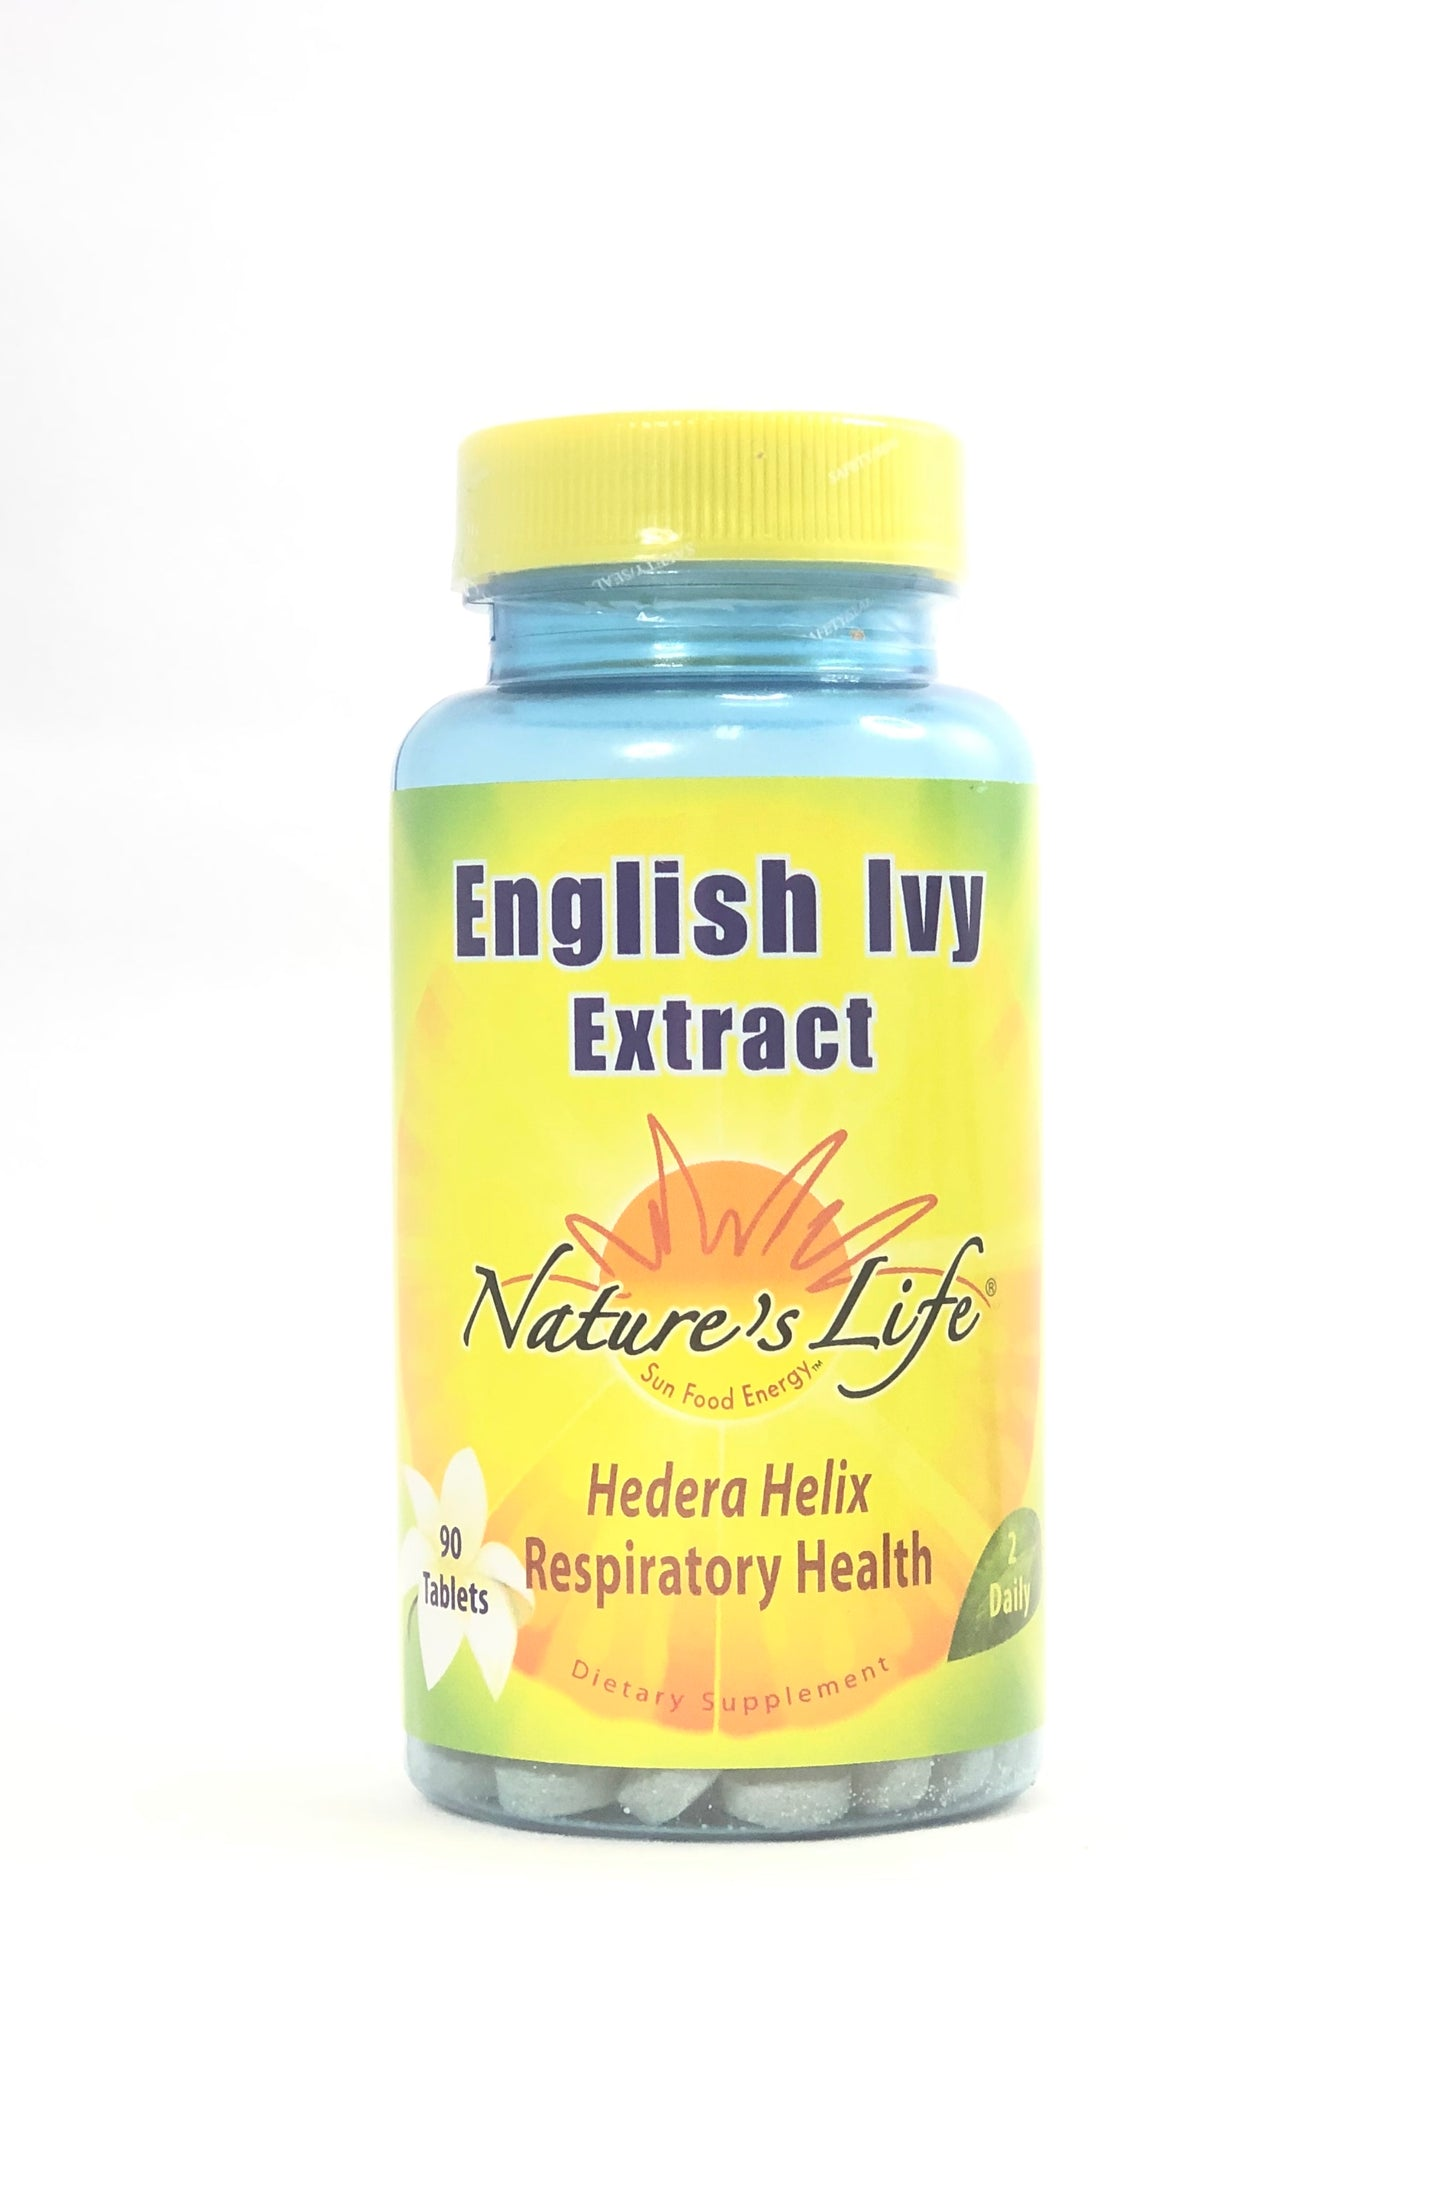 Nature's Life English Ivy Extract 90 Tablets